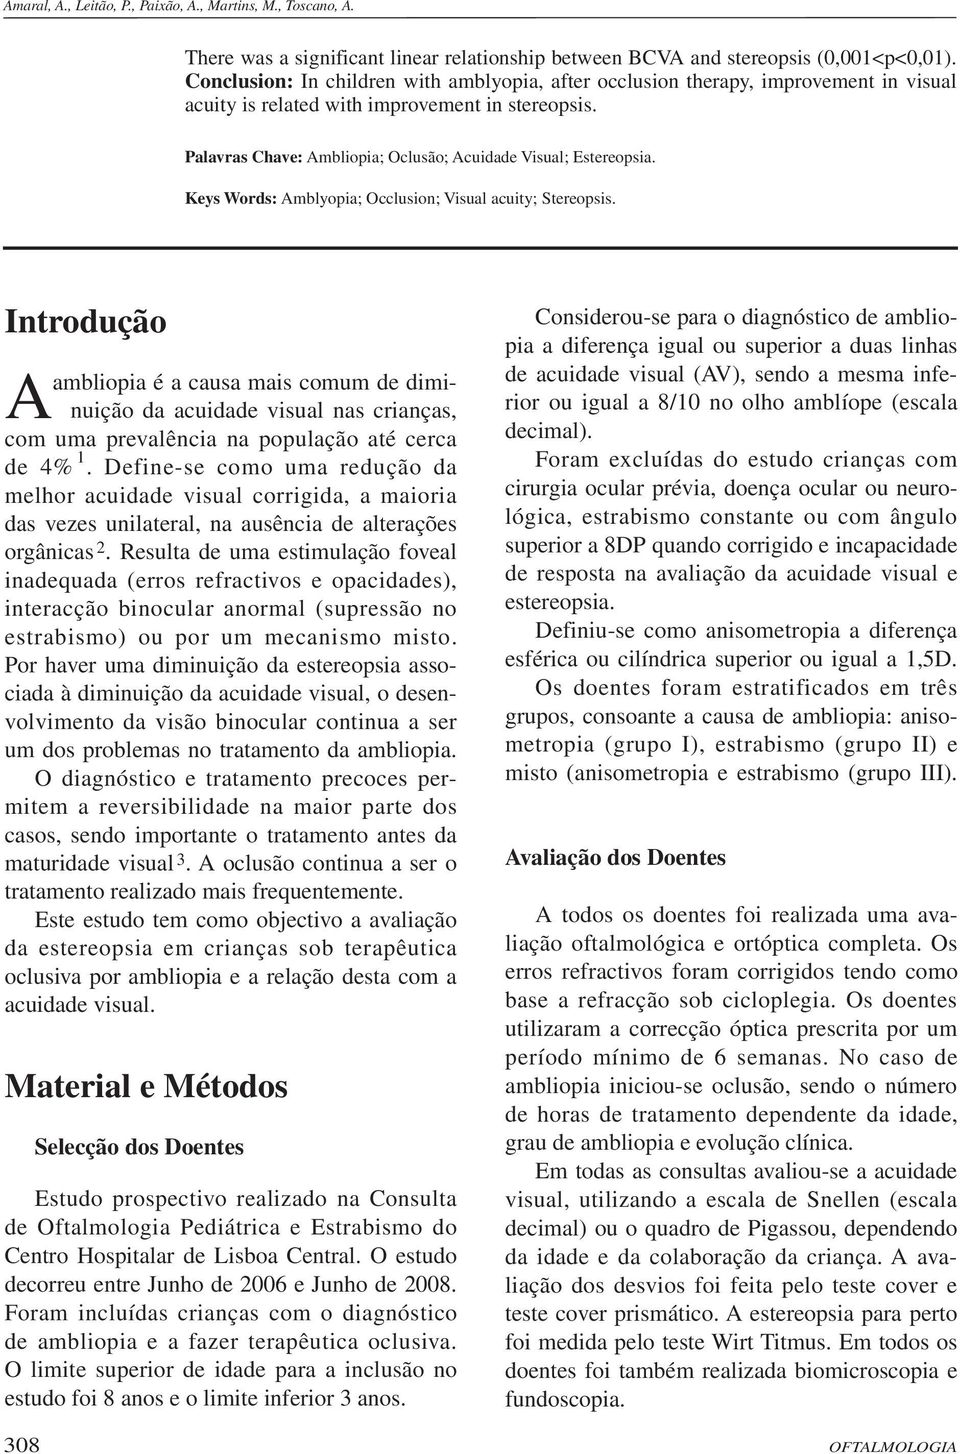 Palavras Chave: Ambliopia; Oclusão; Acuidade Visual; Estereopsia. Keys Words: Amblyopia; Occlusion; Visual acuity; Stereopsis.